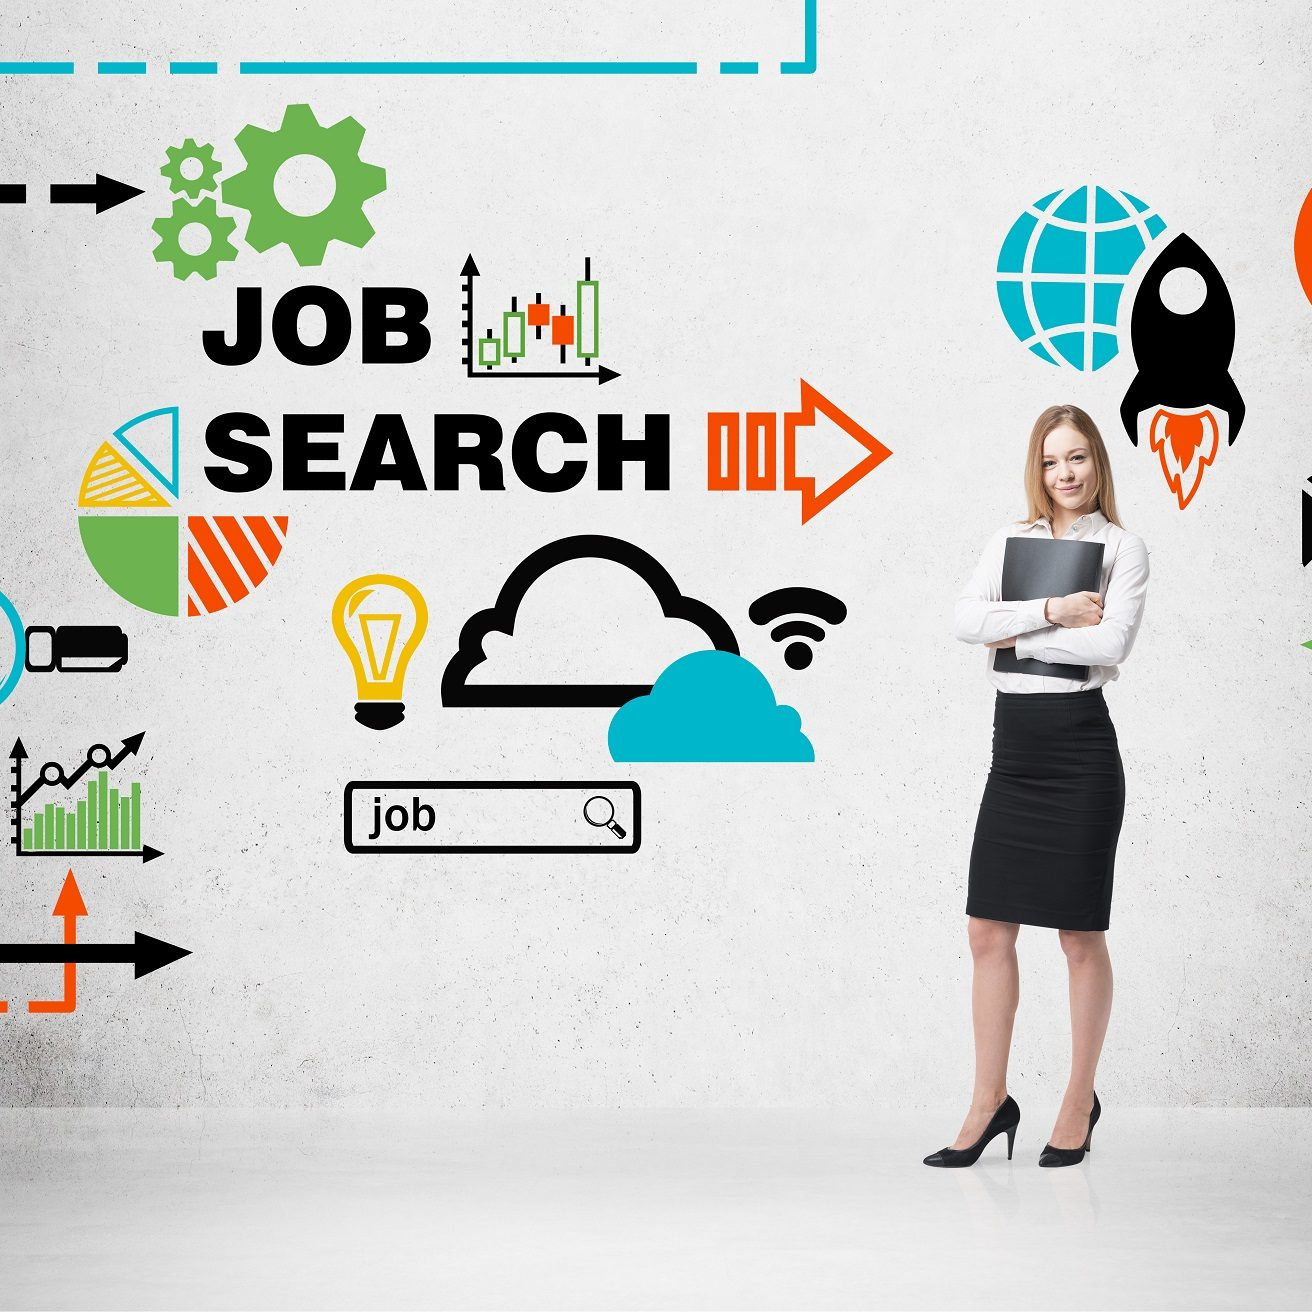 Beautiful recruiter agent with black folder is looking for new candidates. Colourful icons about job vacancies. A concept of recruitment process and job search. Internship and graduate programmes.